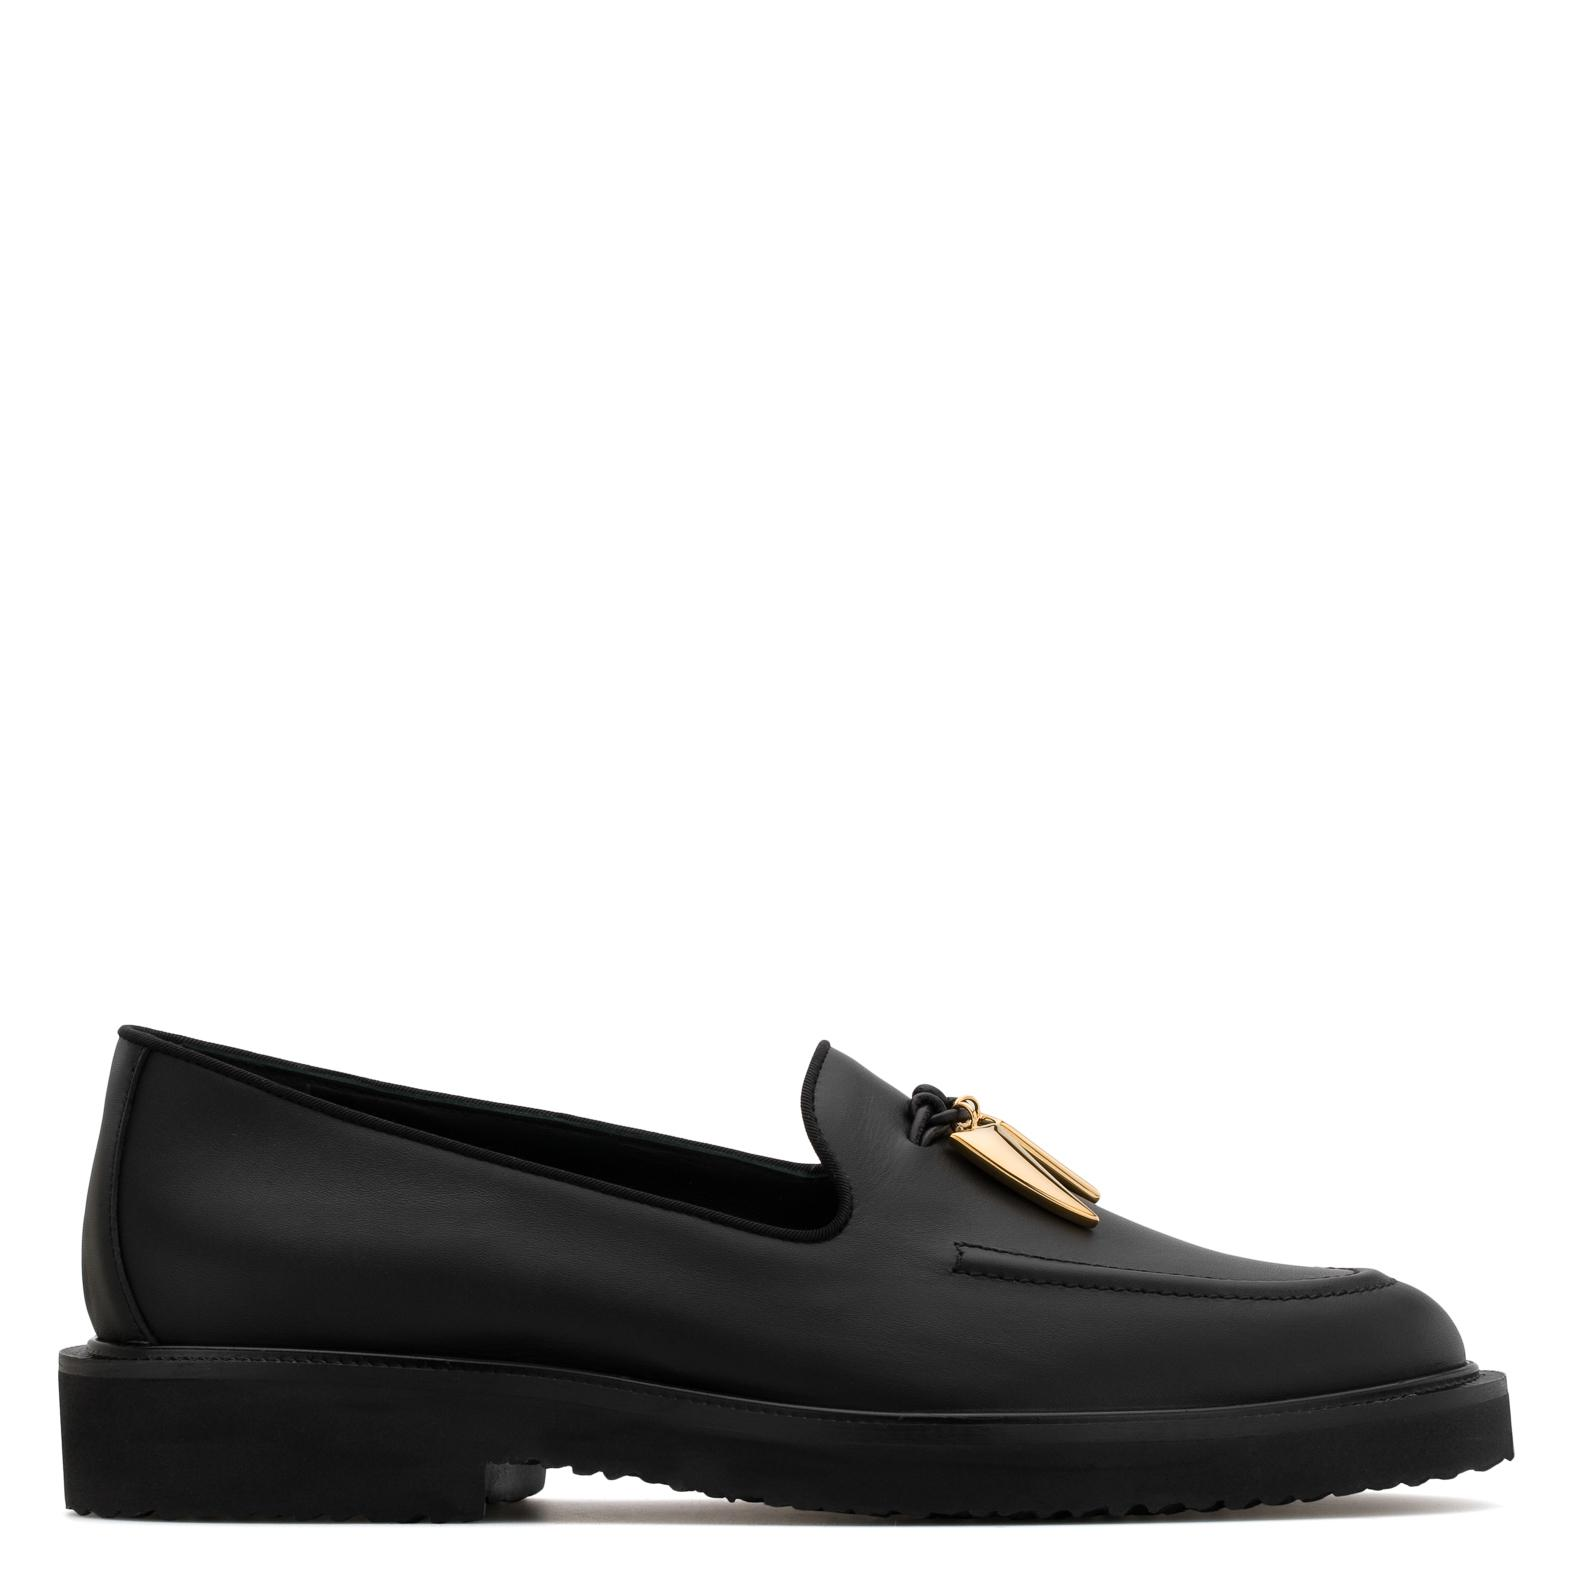 Giuseppe Zanotti Calf leather shoes with gold 'shark tooth' accessory FRED sxVWI